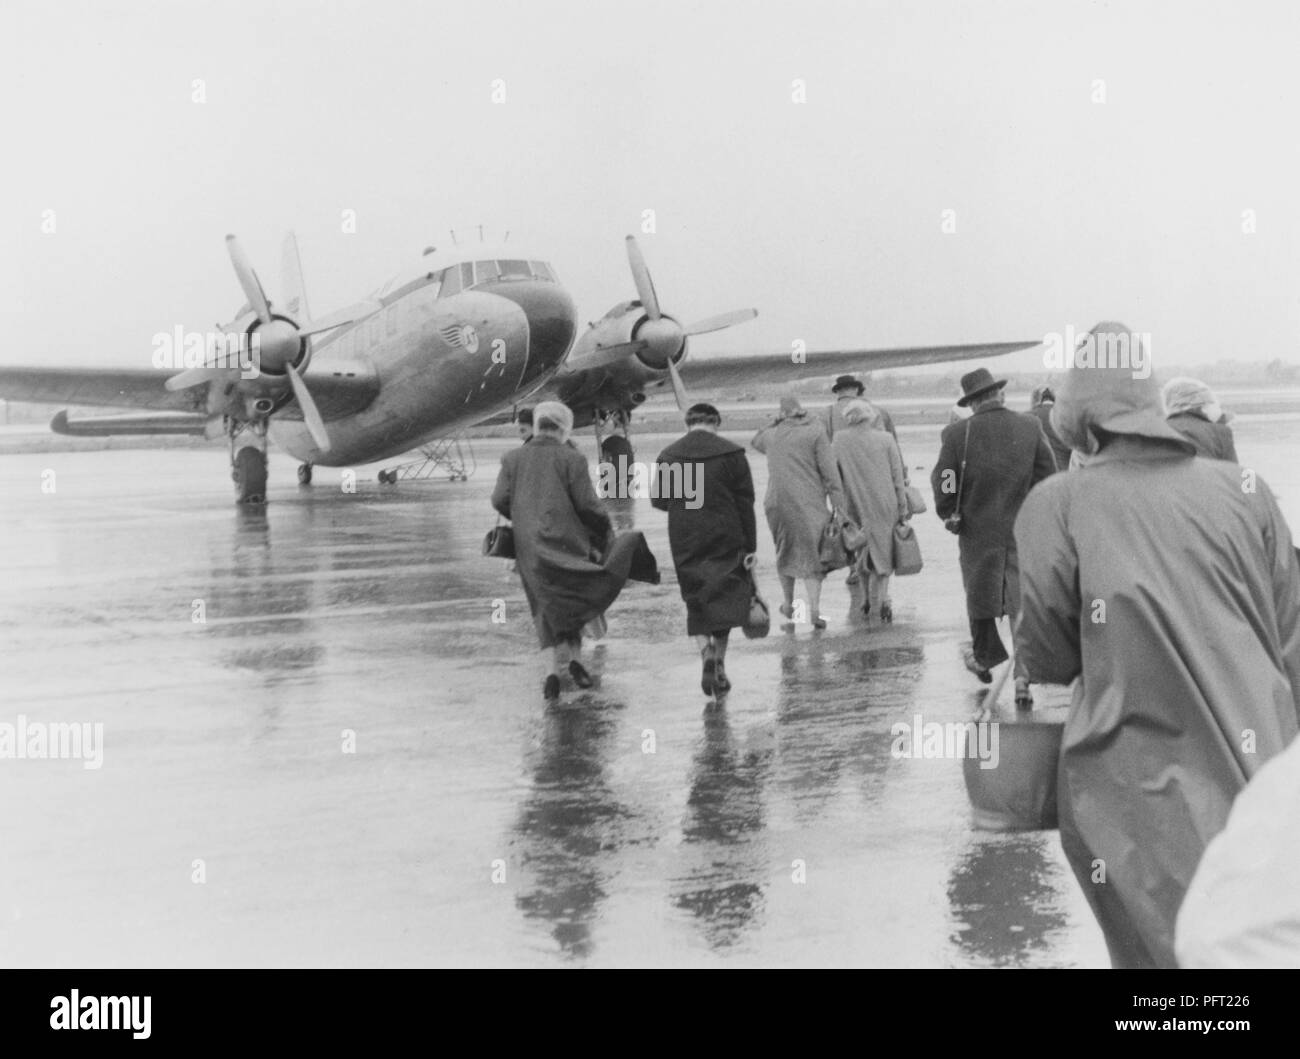 1950s vacation. A group of people are walking in the pouring rain towards the waiting plane bound for Spain. Sweden 1951. ref 385 - Stock Image